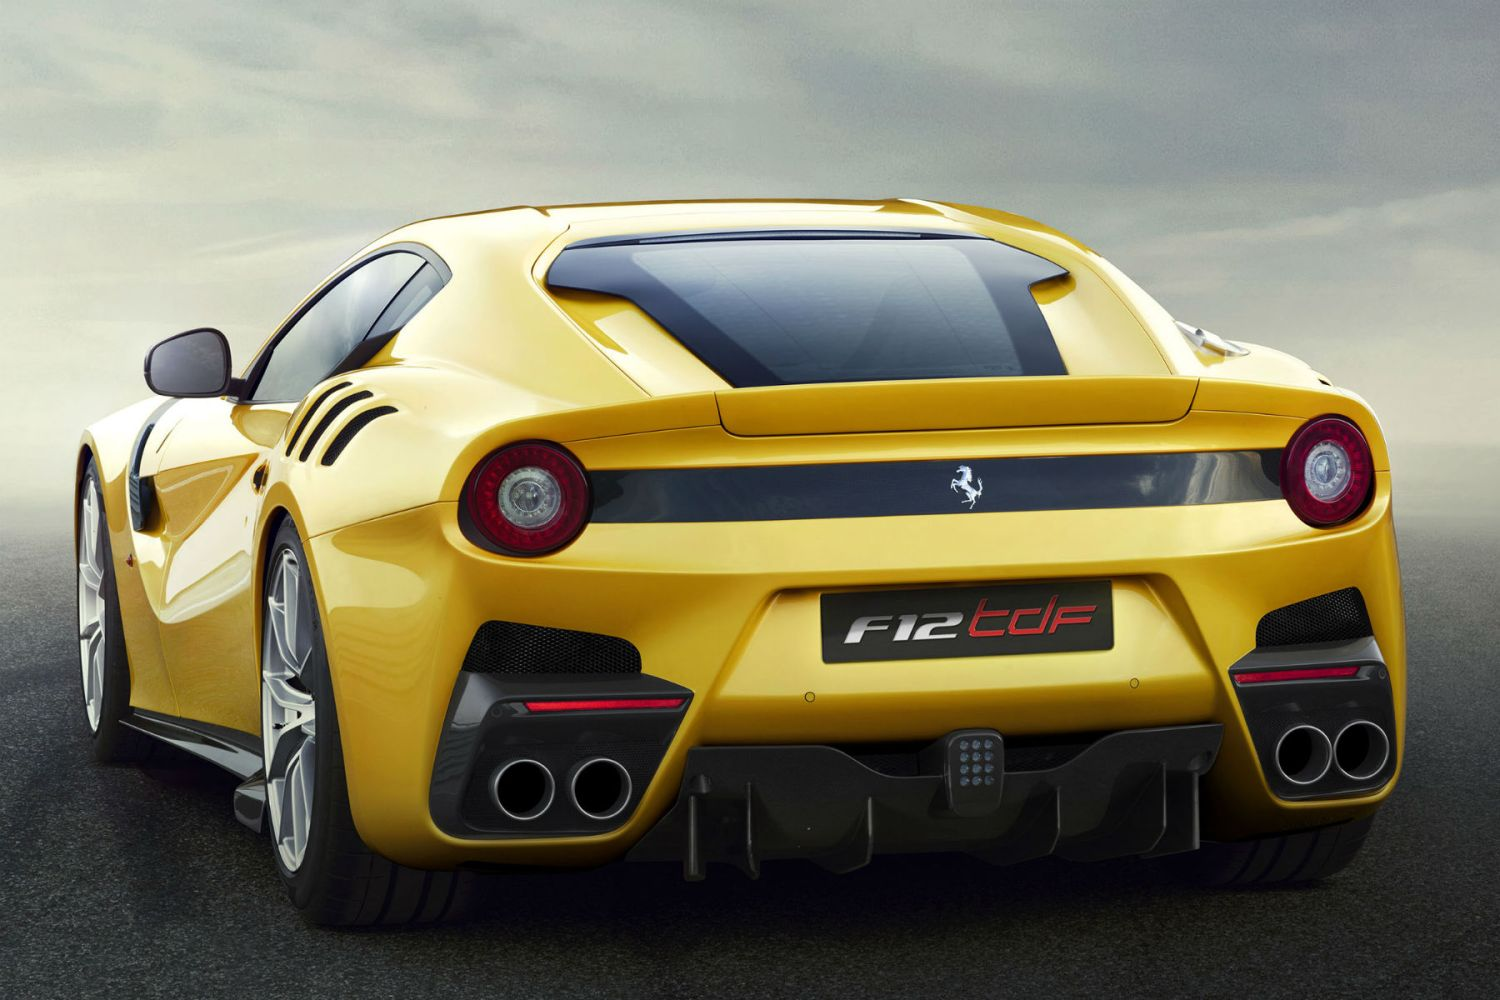 770hp Ferrari F12tdf revealed – it's as fast as a LaFerrari